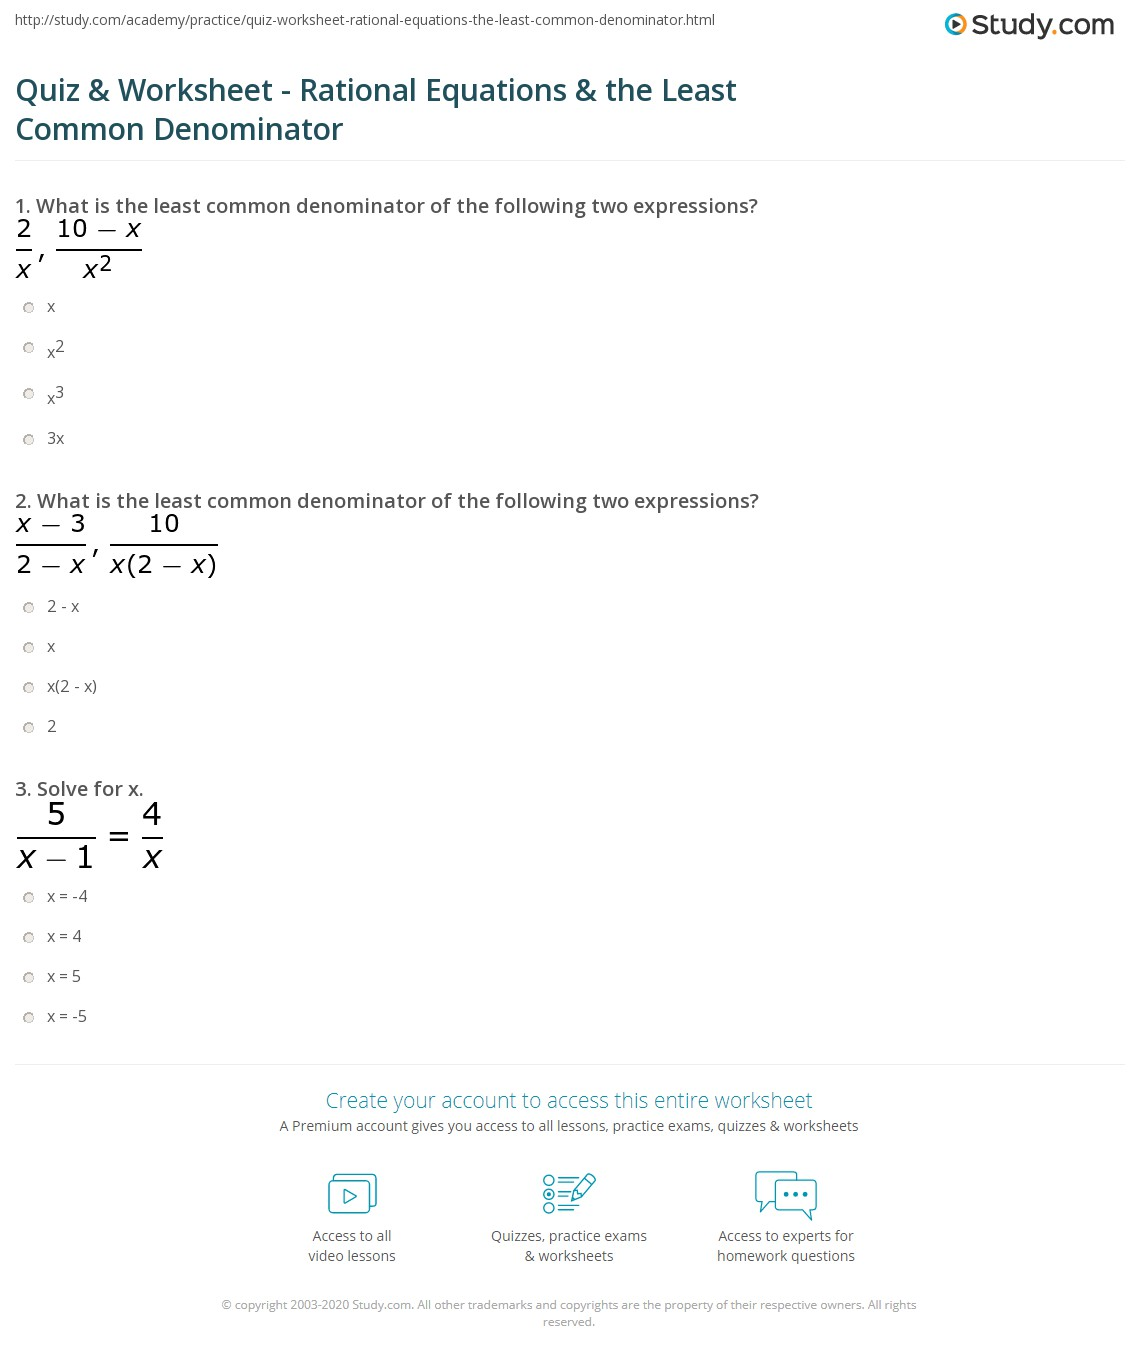 Free Worksheet Least Common Denominator Worksheet quiz worksheet rational equations the least common print solving and finding denominator worksheet